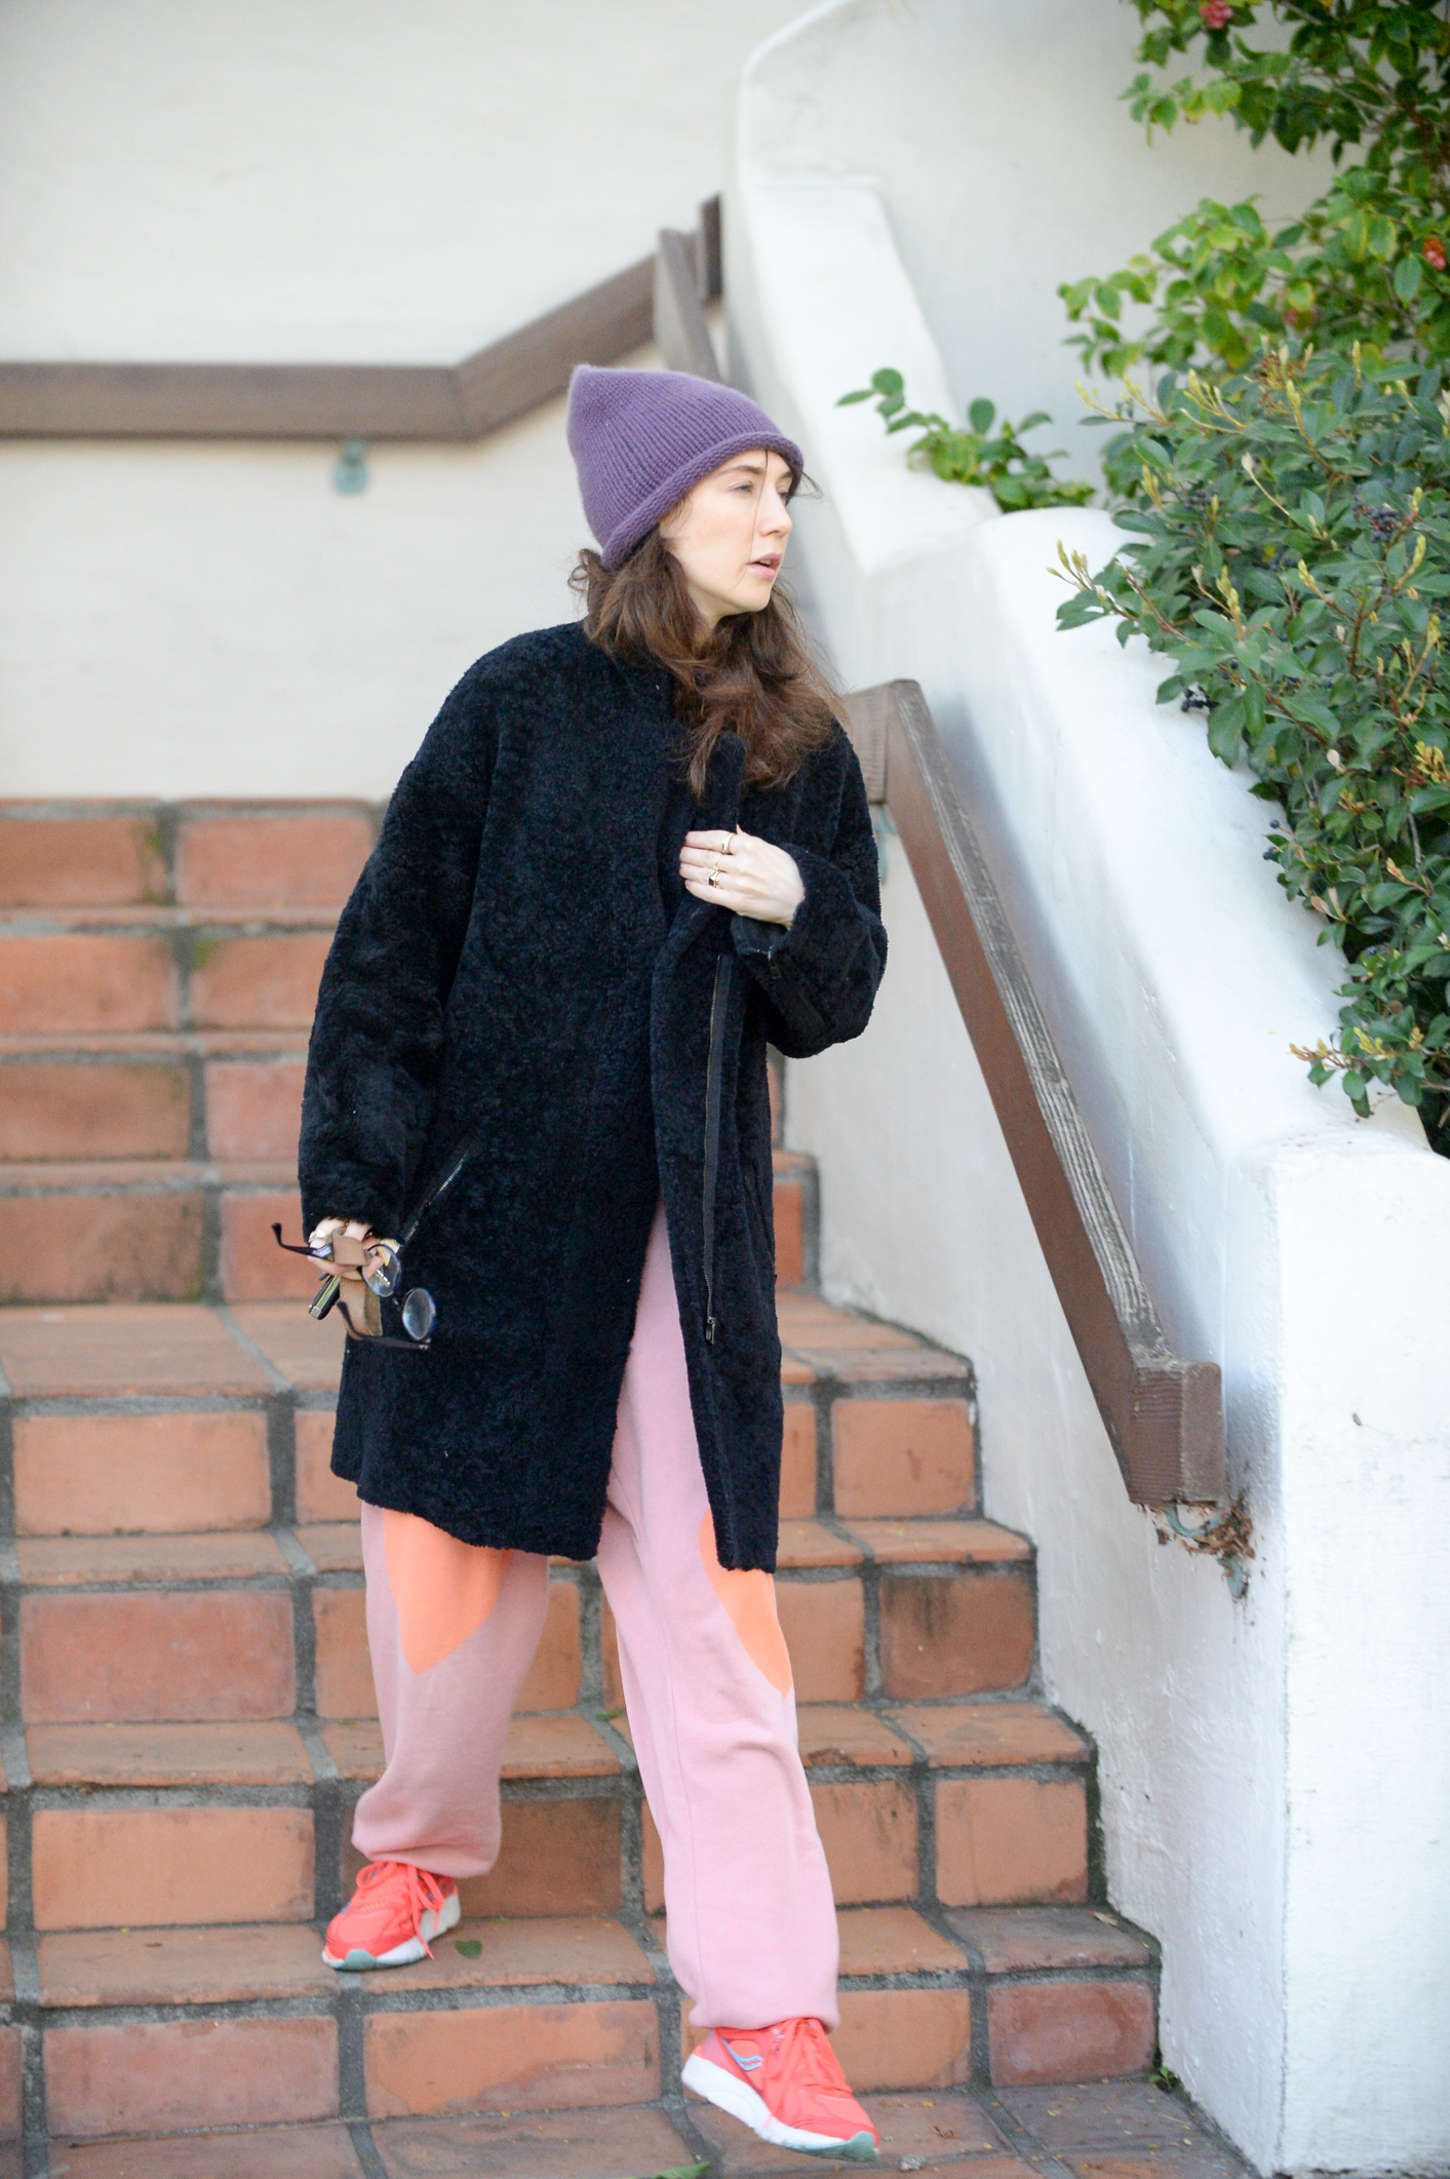 Richard Van Houten Carice Van Houten Leaves House In West Hollywood 05